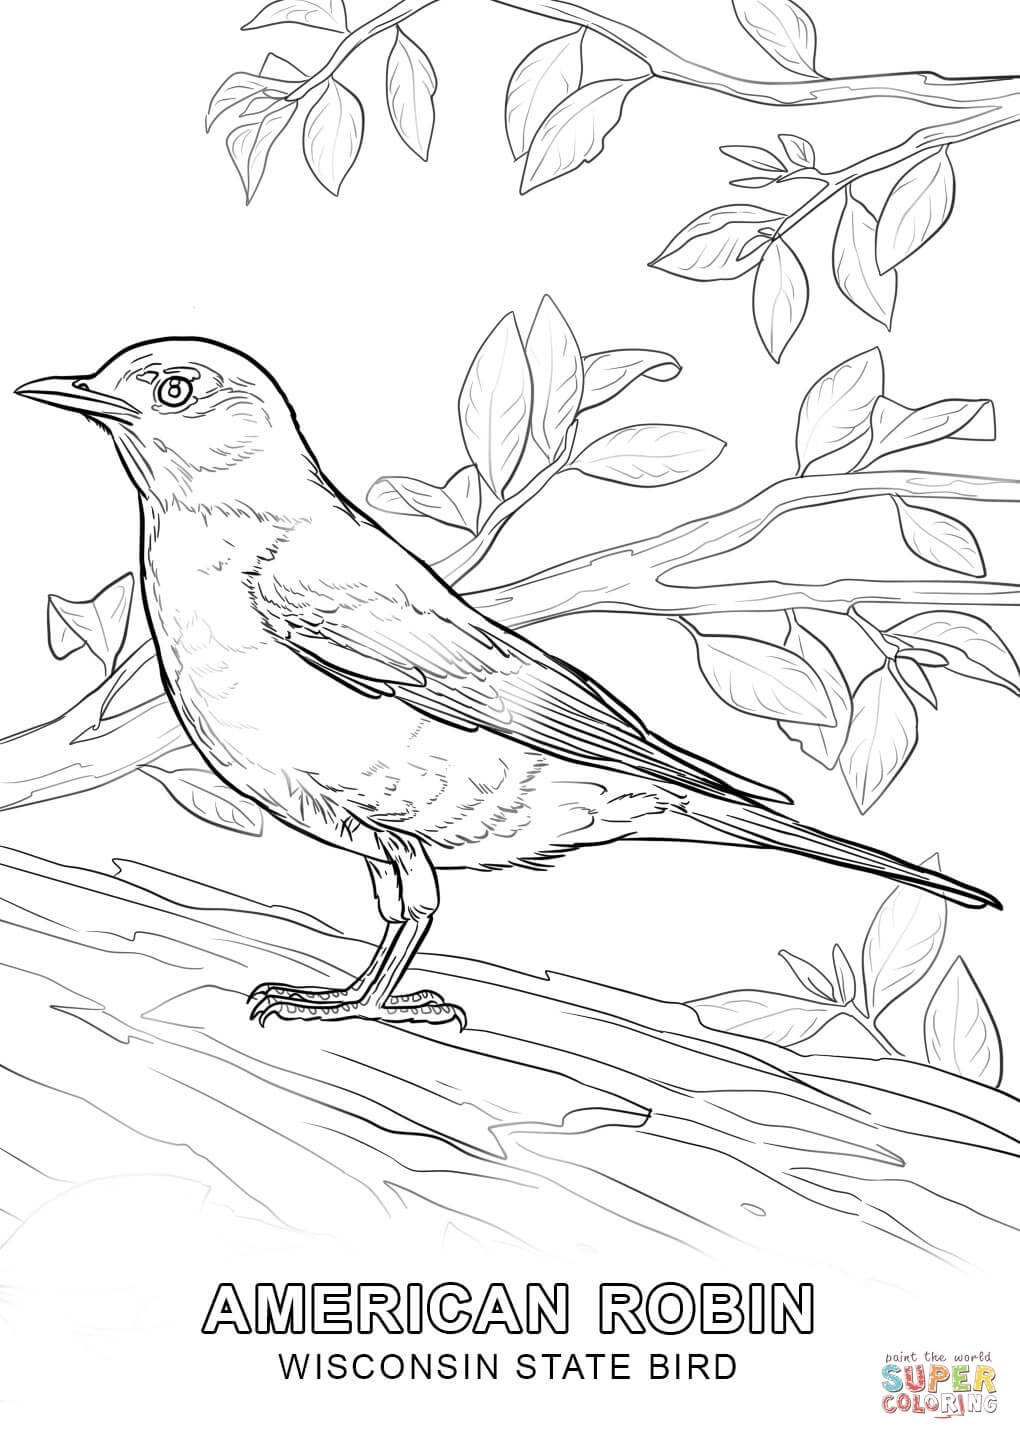 Coloring Pages : Reliable Printable Pictures Of Birds To Color - Free Printable Images Of Birds